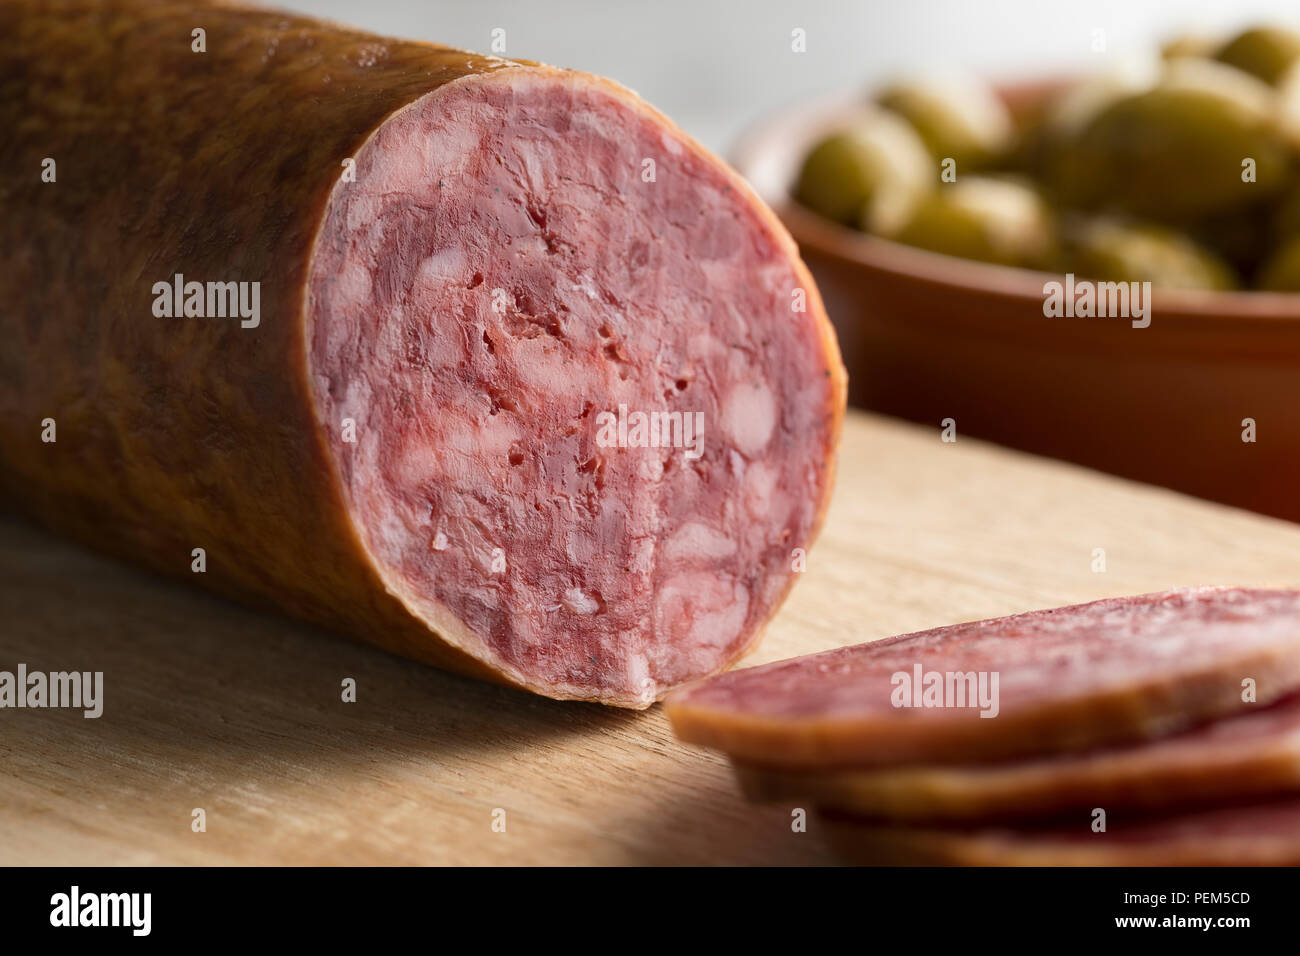 Traditional piece of Spanish Salchichon sausage and slices close up - Stock Image